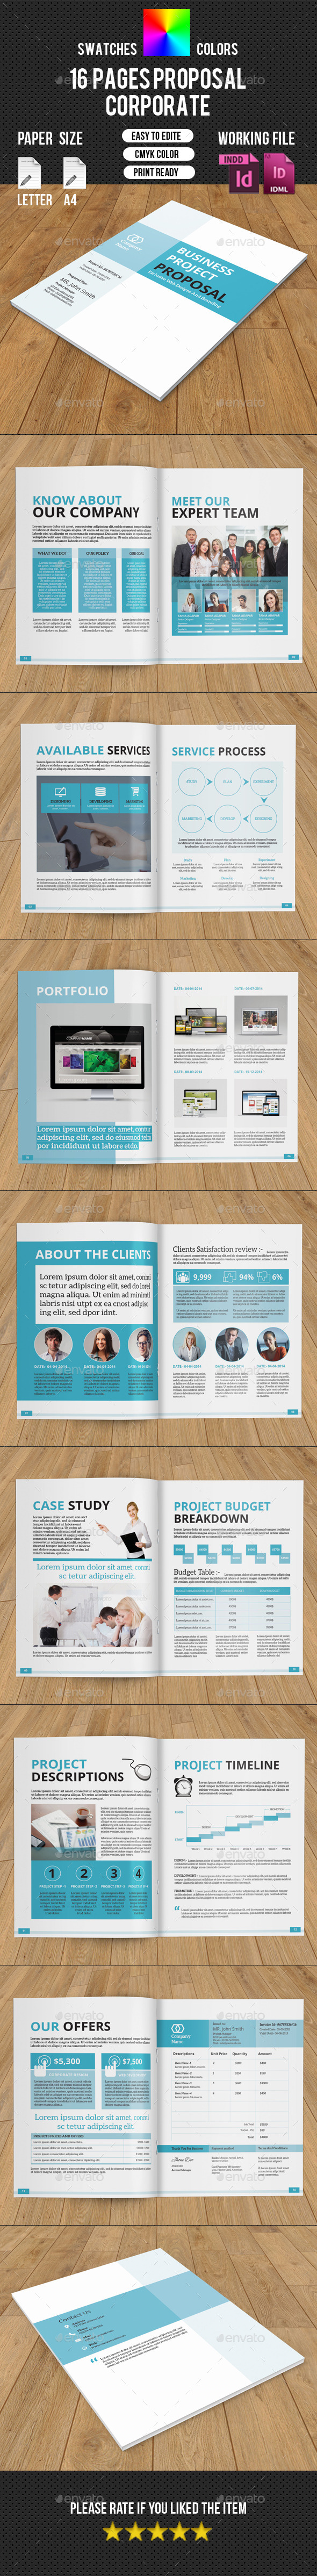 GraphicRiver Corporate Proposal-V196 10376674